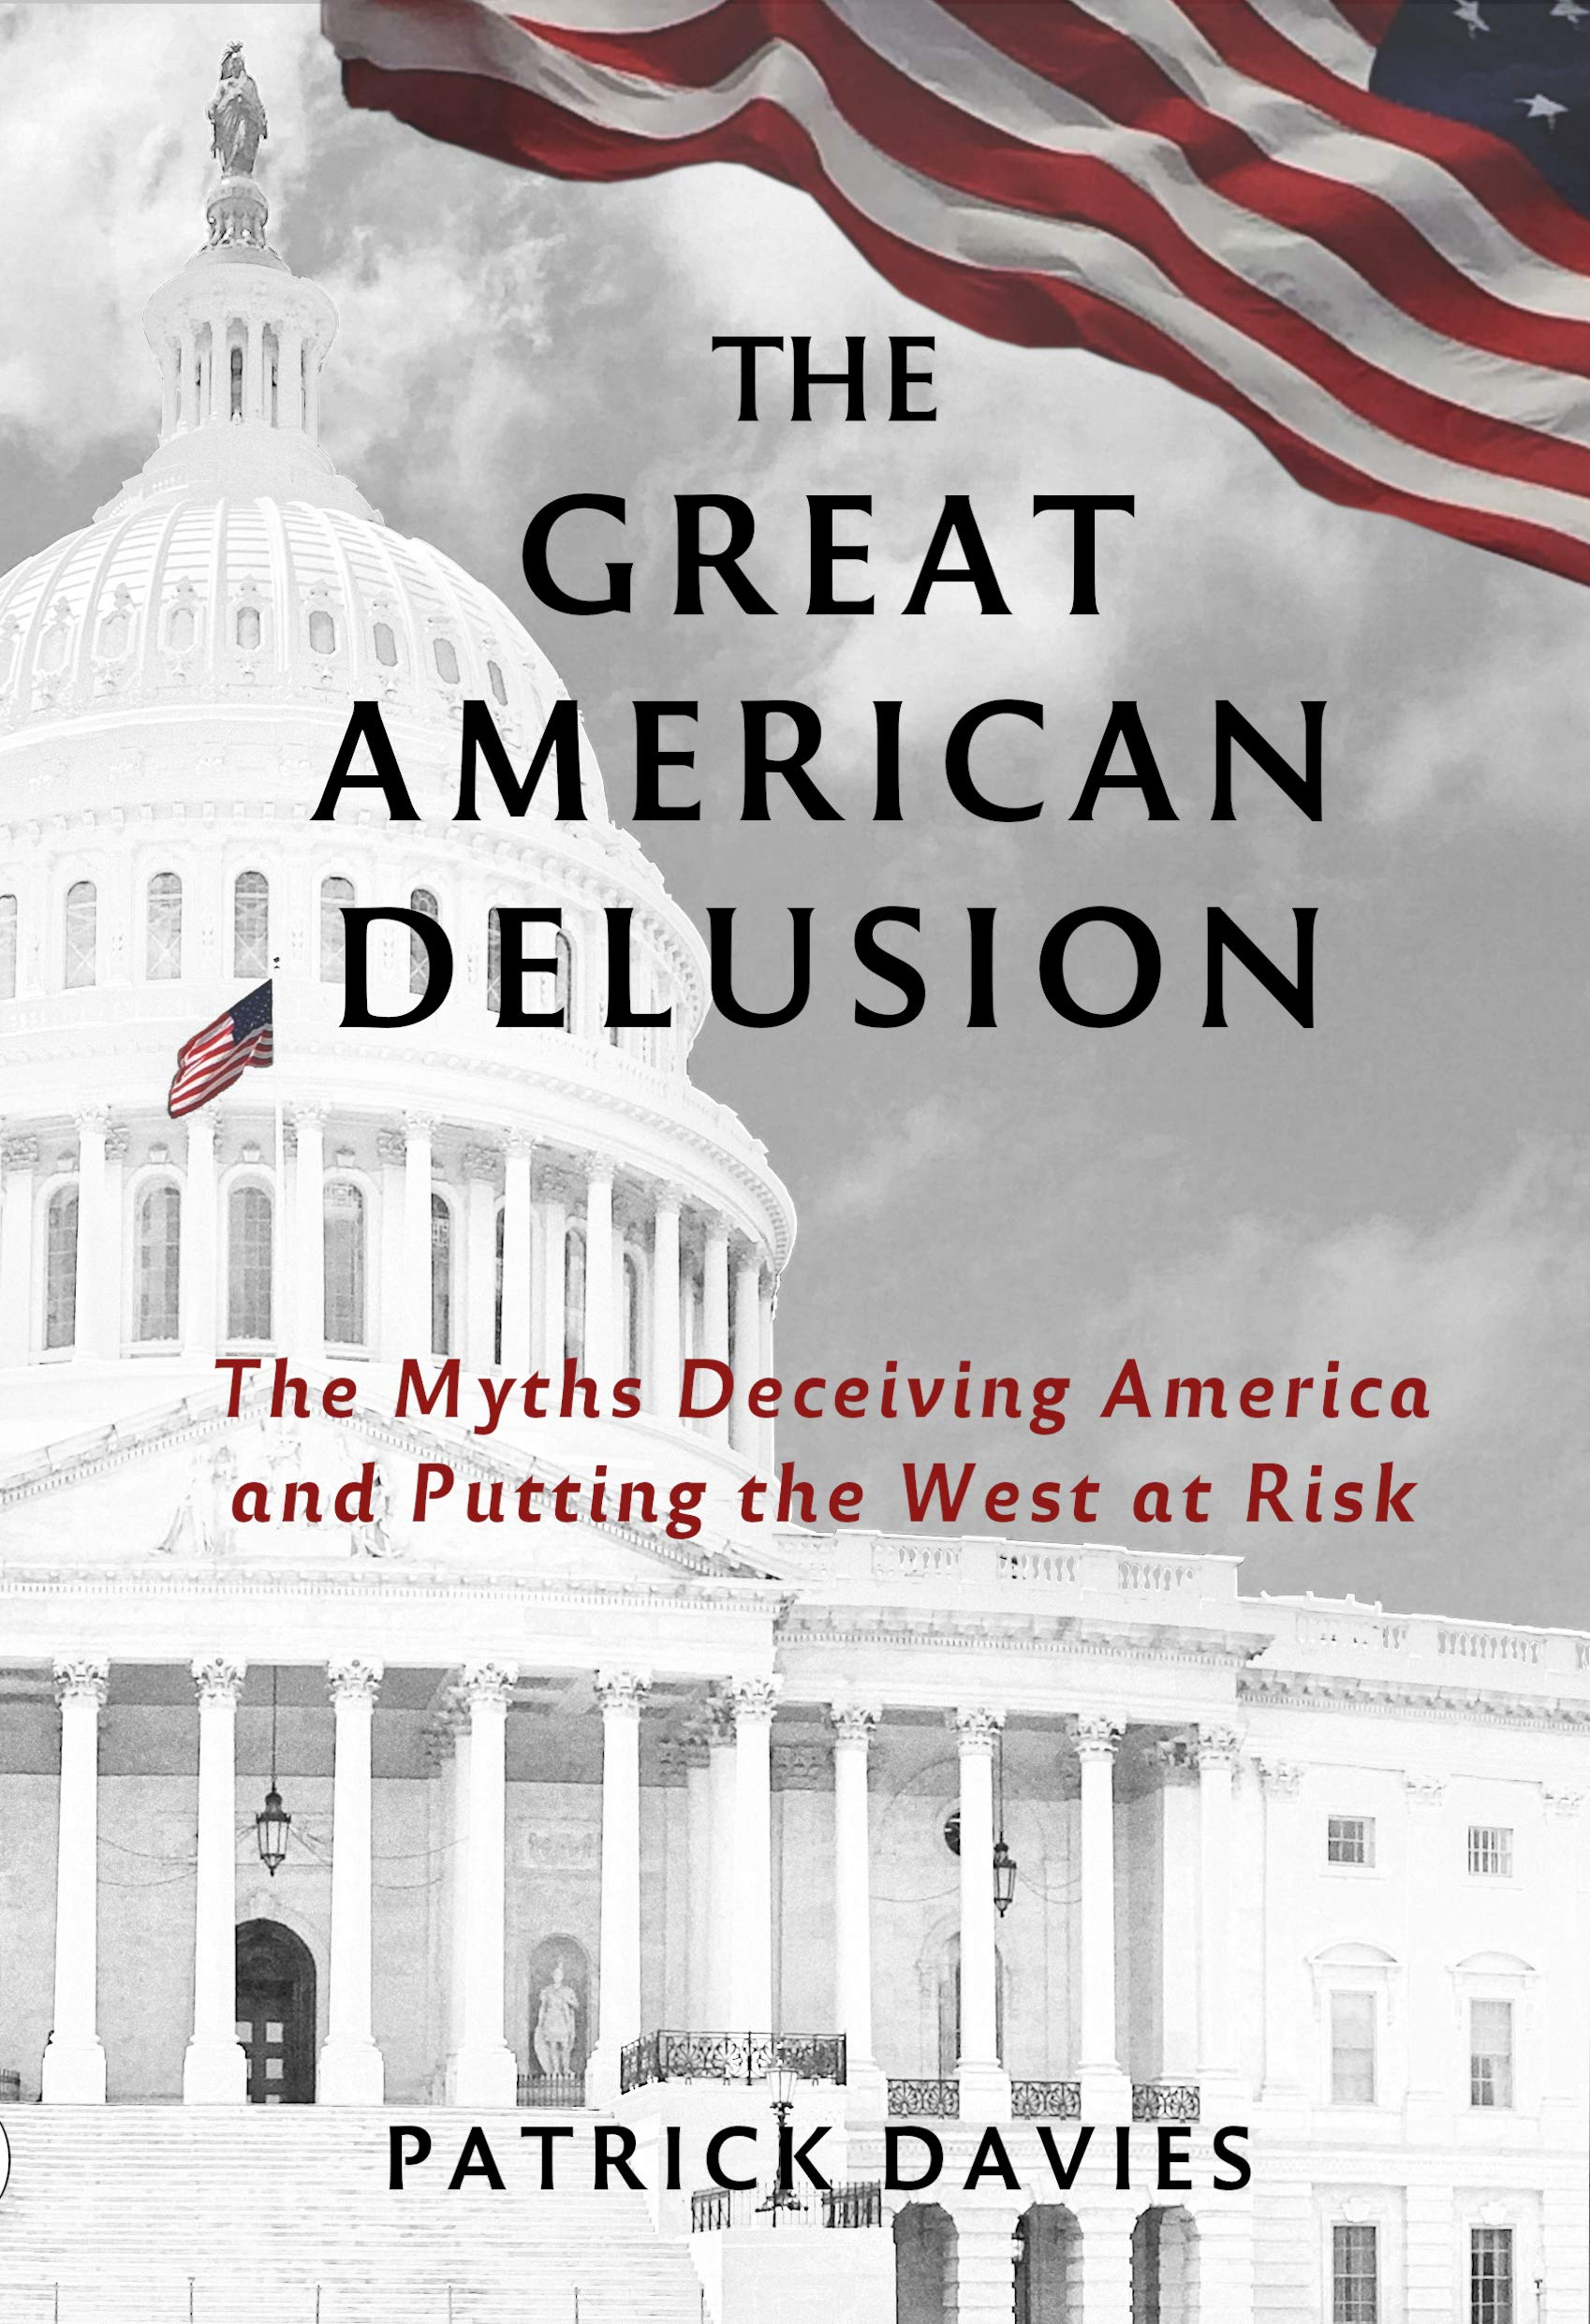 The Great American Delusion: The Myths Deceiving America and Putting the West at Risk